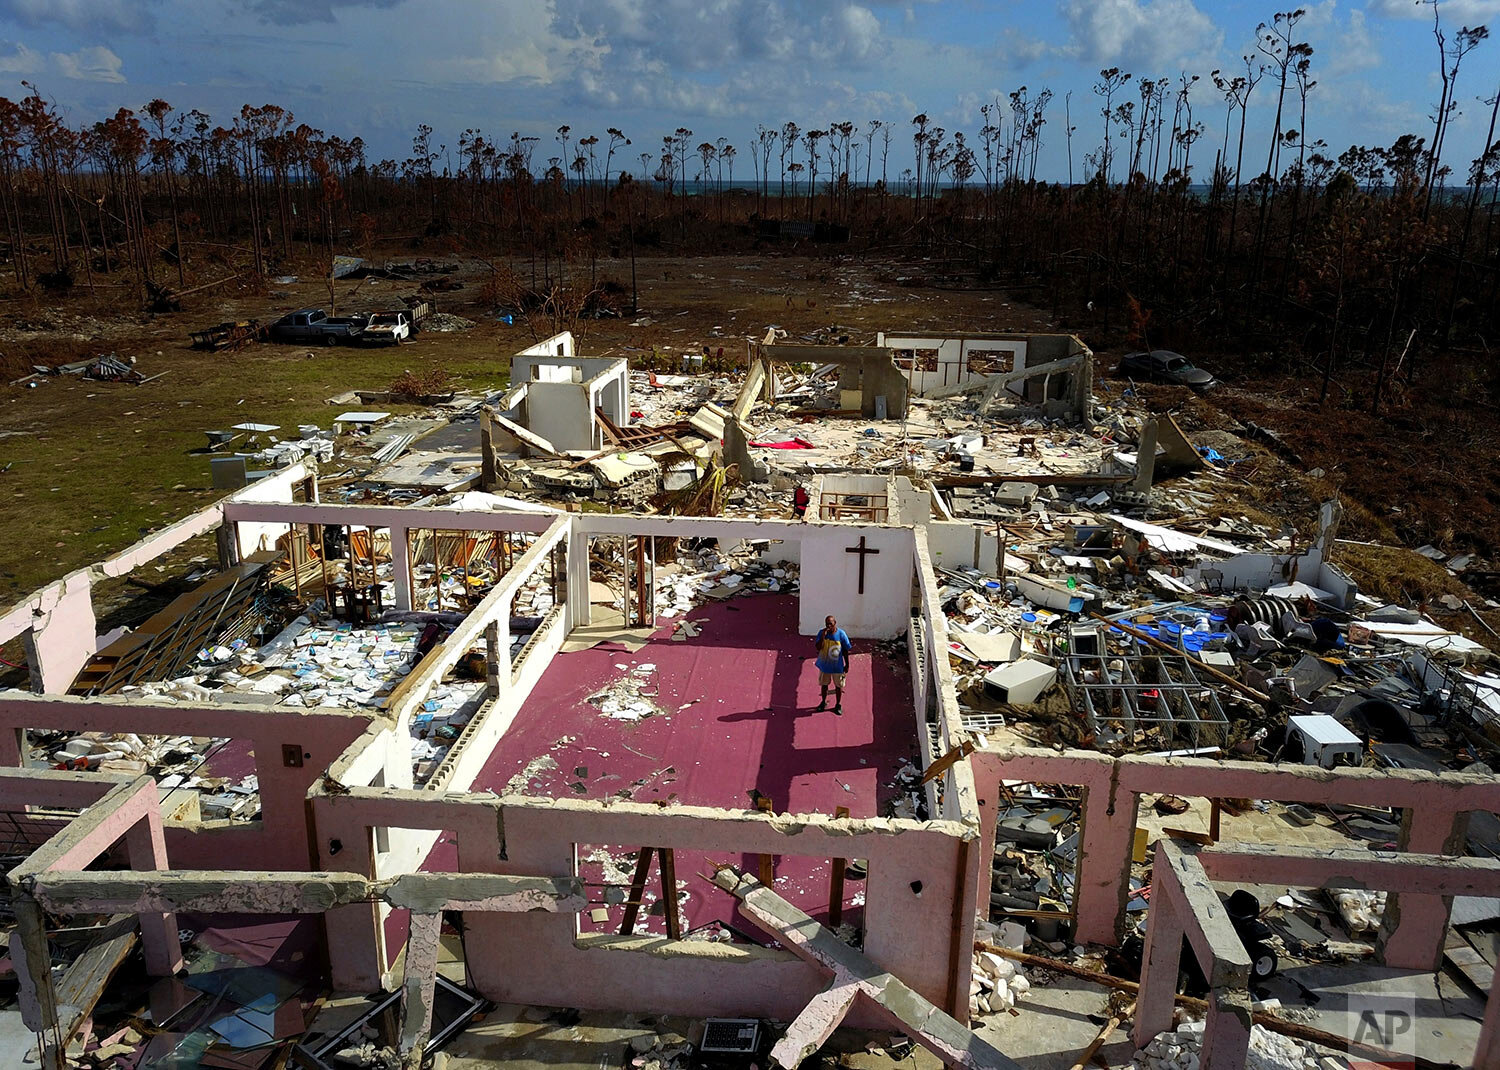 """Pastor Jeremiah Saunders poses for a photo among the ruins of his church that was destroyed by Hurricane Dorian, in High Rock, Grand Bahama, Bahamas, Wednesday Sept. 11, 2019. Jeremiah says """"I spoke to the water: 'Peace, be still.' It never listened,"""" Saunders said with a wide smile and then grew serious as he focused on the task that tens of thousands of Bahamians now face on two islands devastated by the Category 5 storm: the clean-up. (AP Photo / Ramon Espinosa)"""